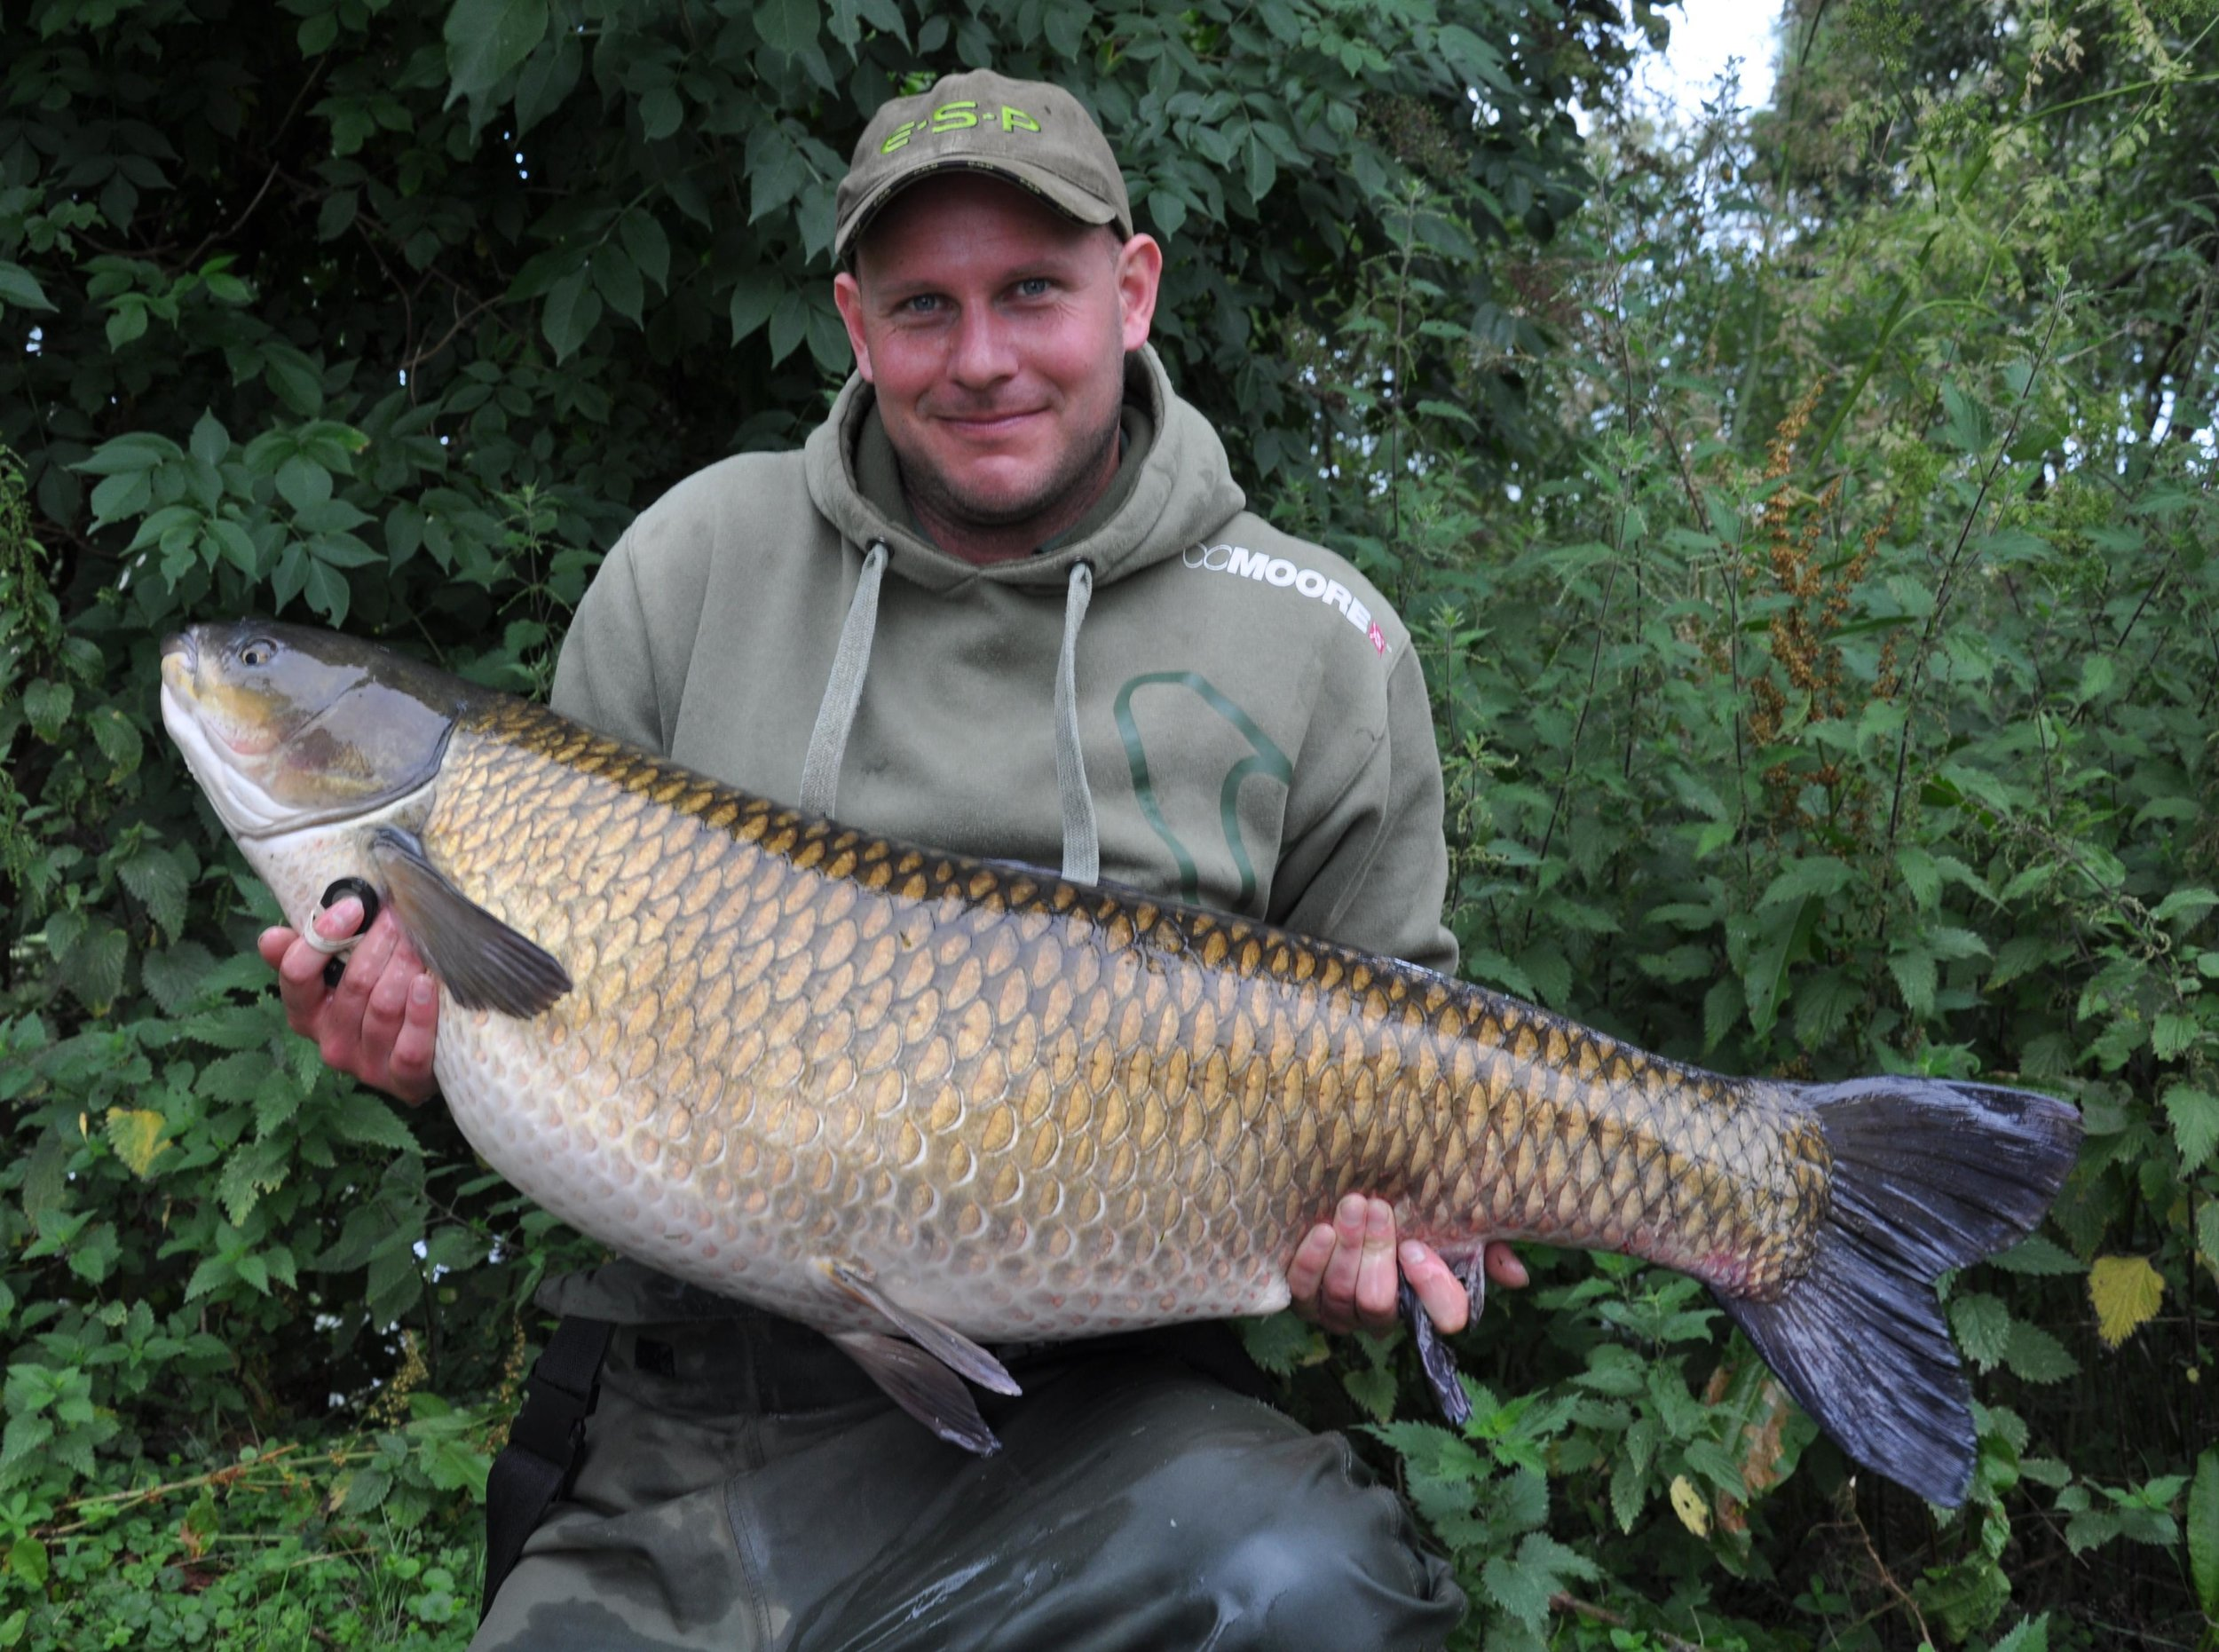 Kev Hewitt with a mid-forty grass carp